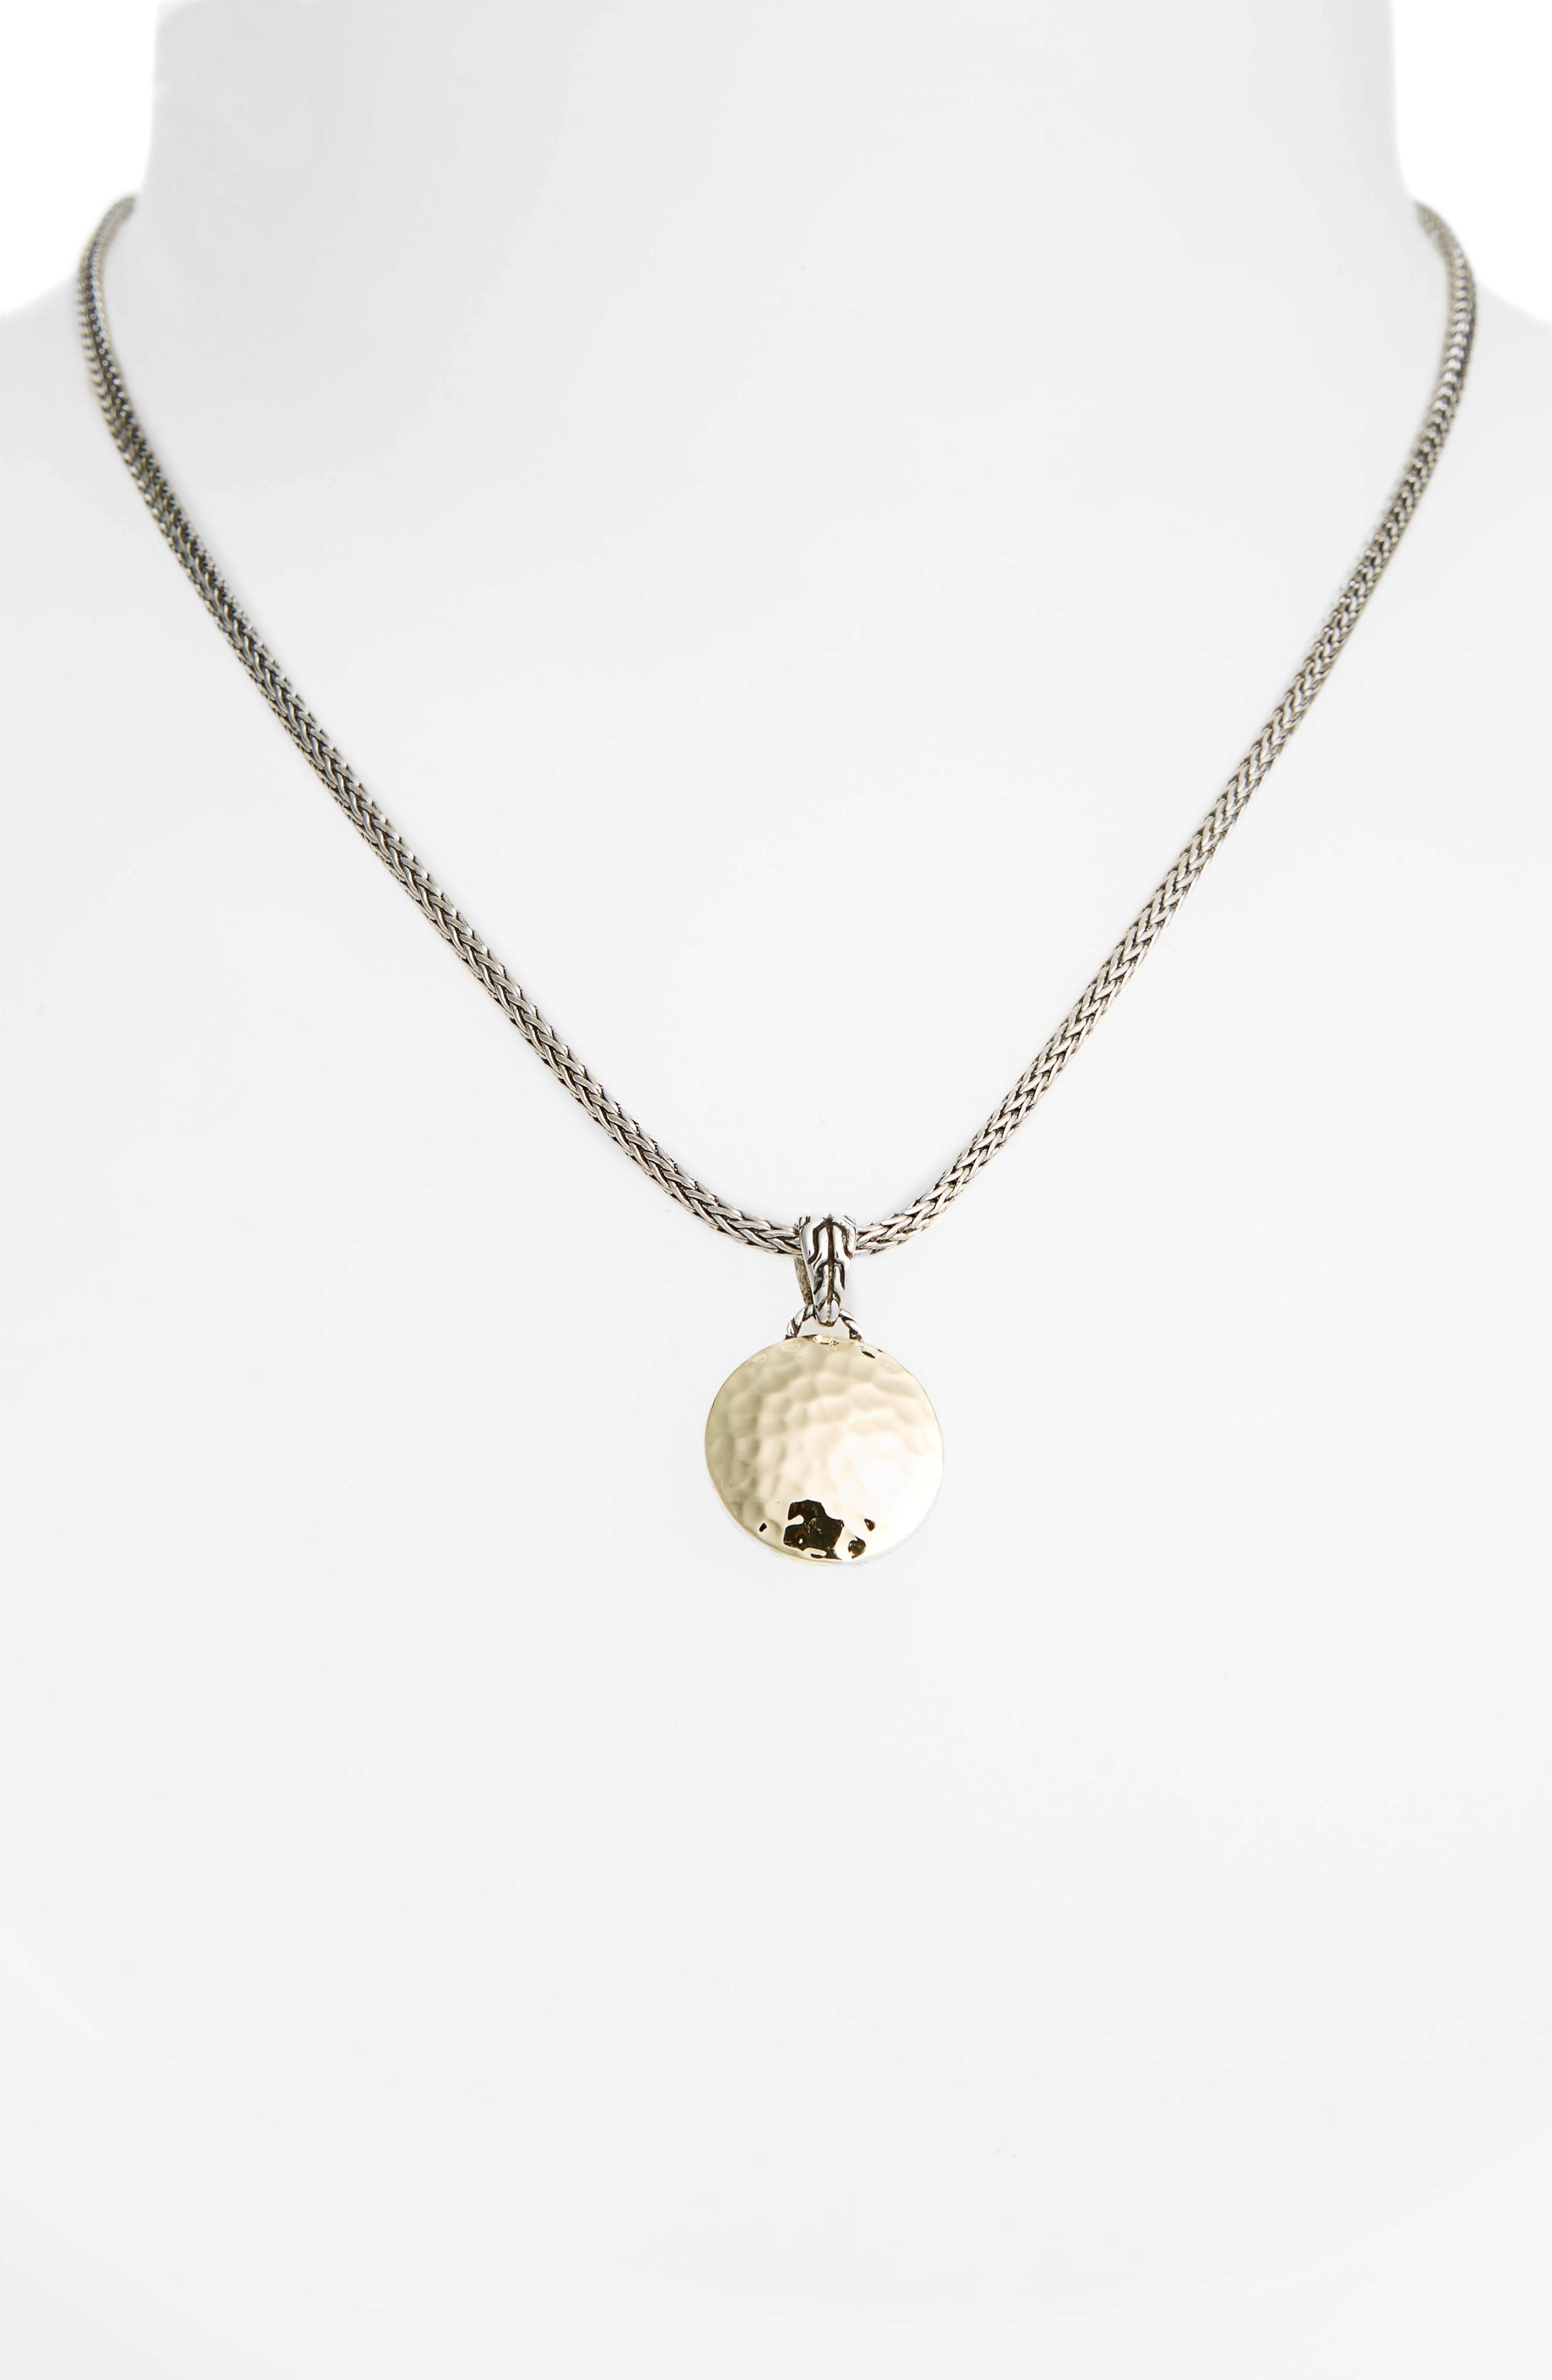 'Palu' Round Pendant Necklace,                             Alternate thumbnail 3, color,                             SILVER/ GOLD